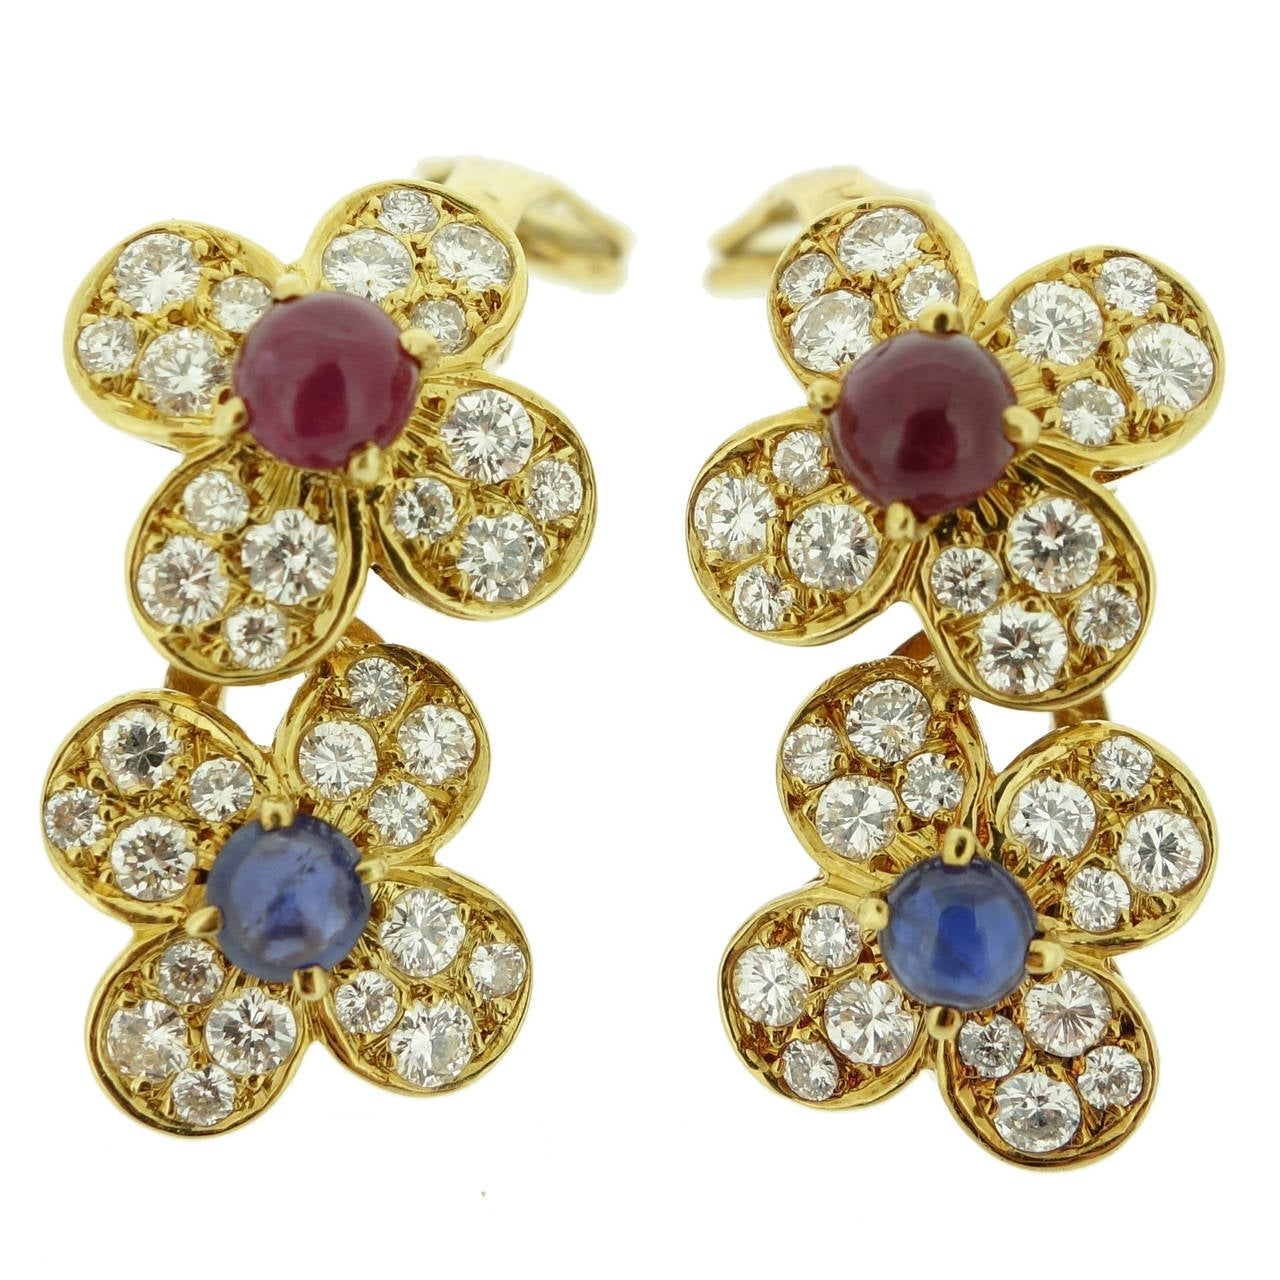 Van Cleef & Arpels Ruby Sapphire Diamond Gold Double Flower Earrings 1